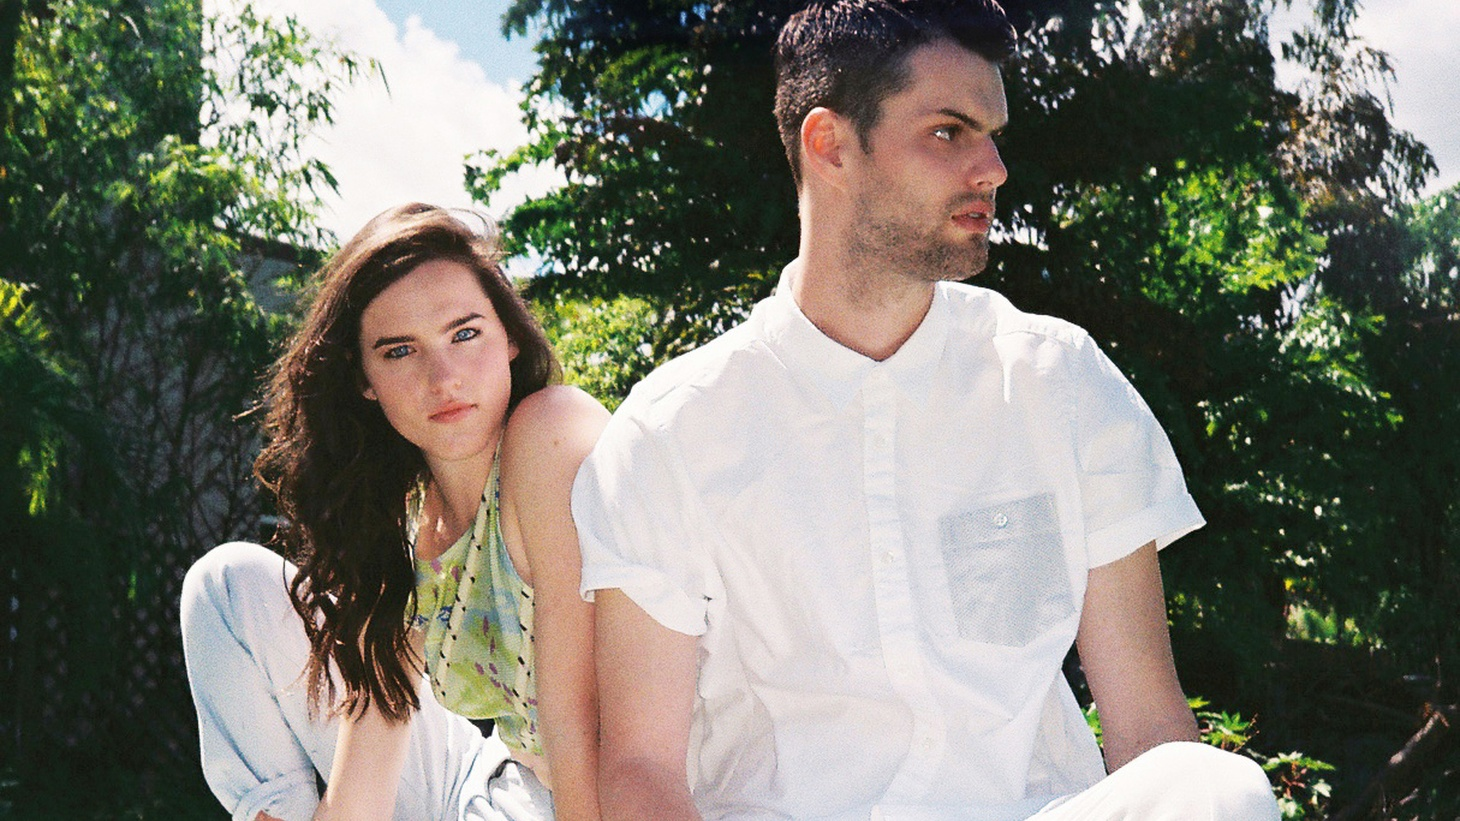 KCRW's Chris Douridas is a man with big ears, and they are usually on the ground seeking out new musical treasures. His latest find is duo Sofi Tukker, a rising New York dance music pair influenced by Brazilian and world rhythms.